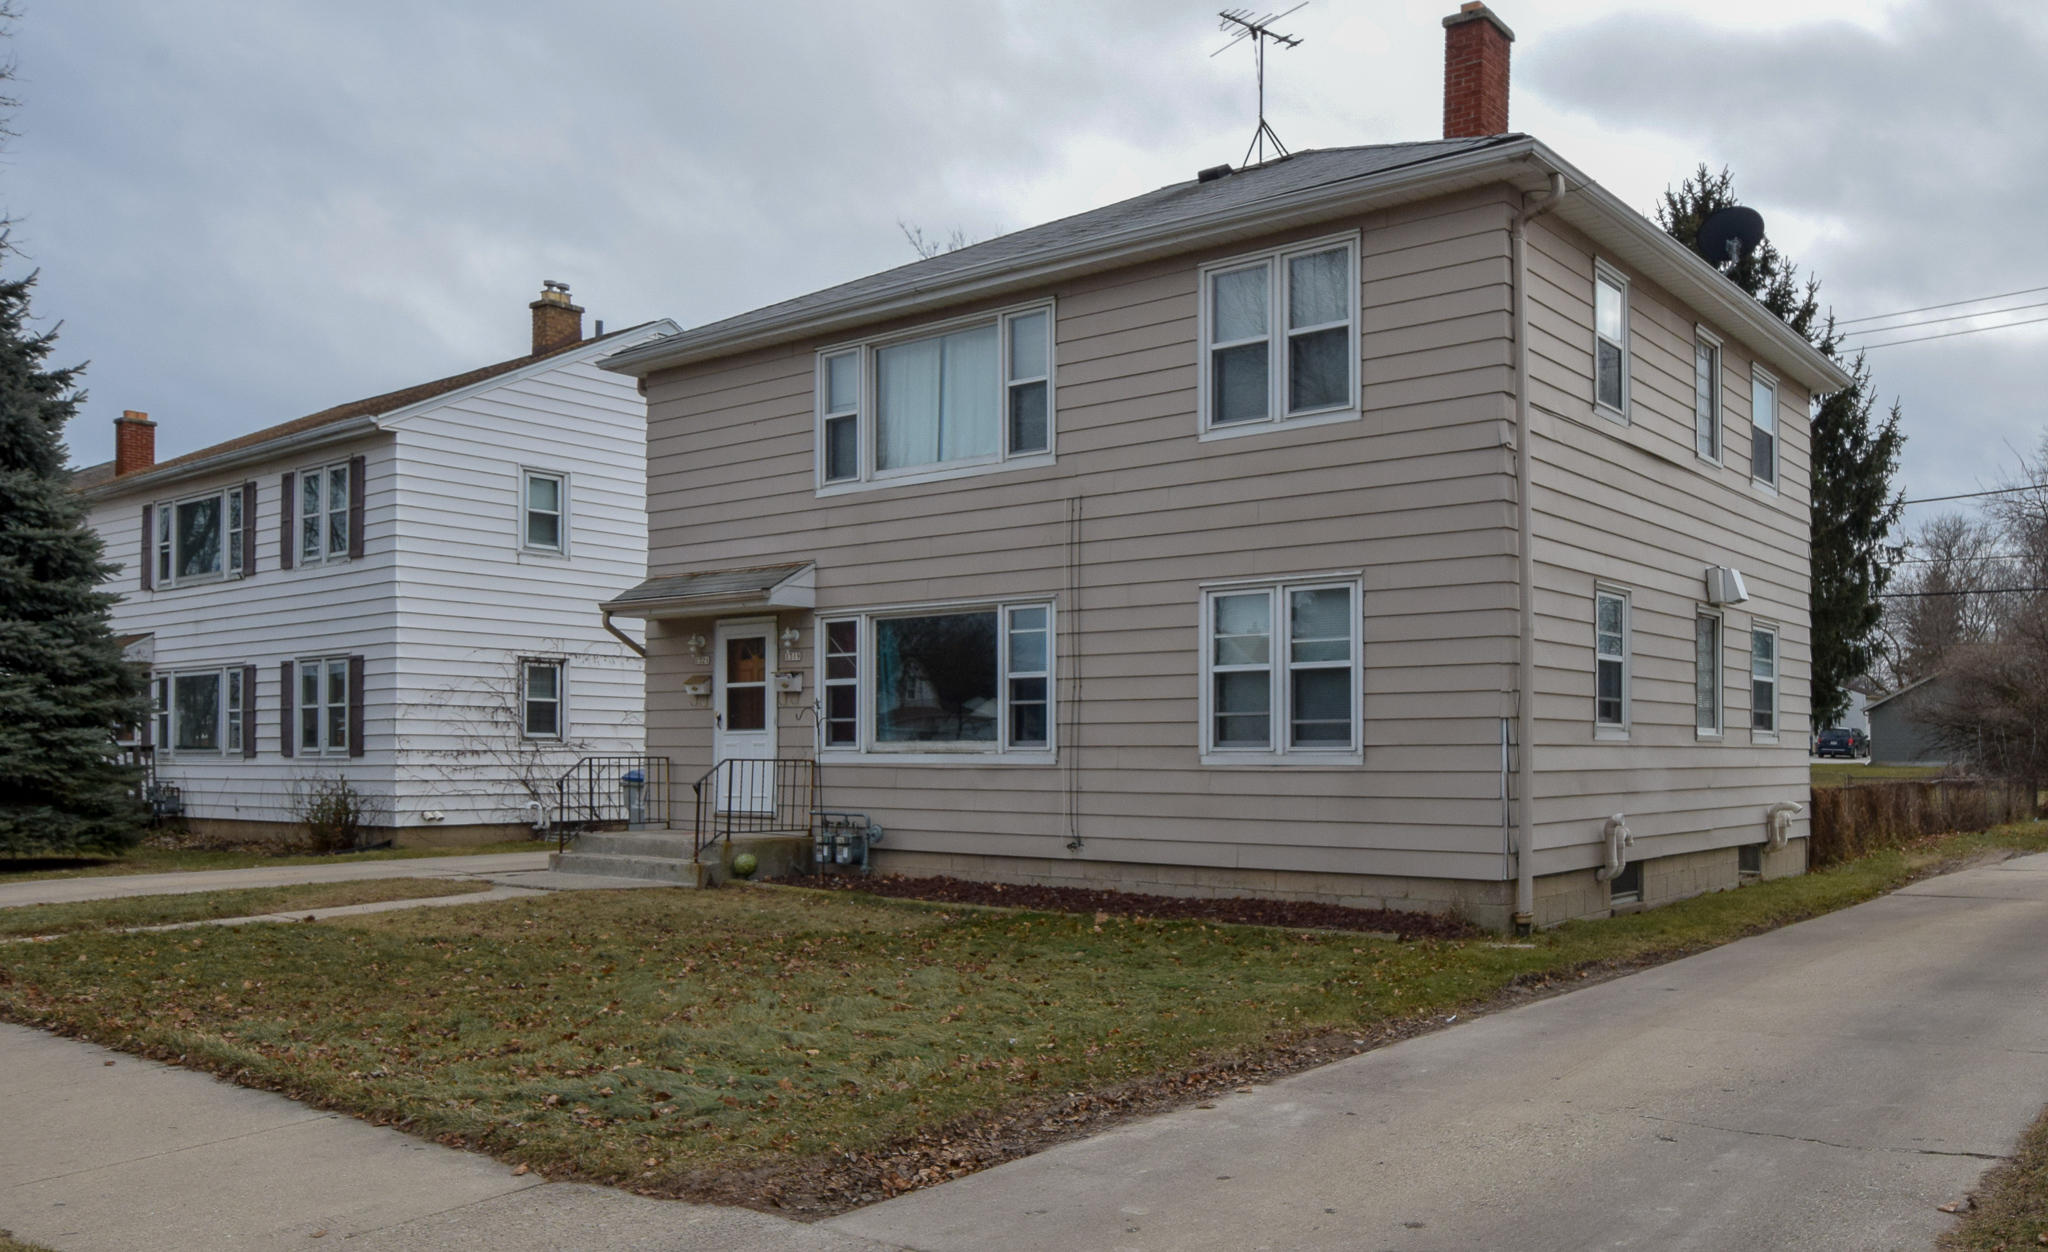 1319 Howard Ave., Milwaukee, Wisconsin 53207, 3 Bedrooms Bedrooms, 5 Rooms Rooms,1 BathroomBathrooms,Two-Family,For Sale,Howard Ave.,1,1619884